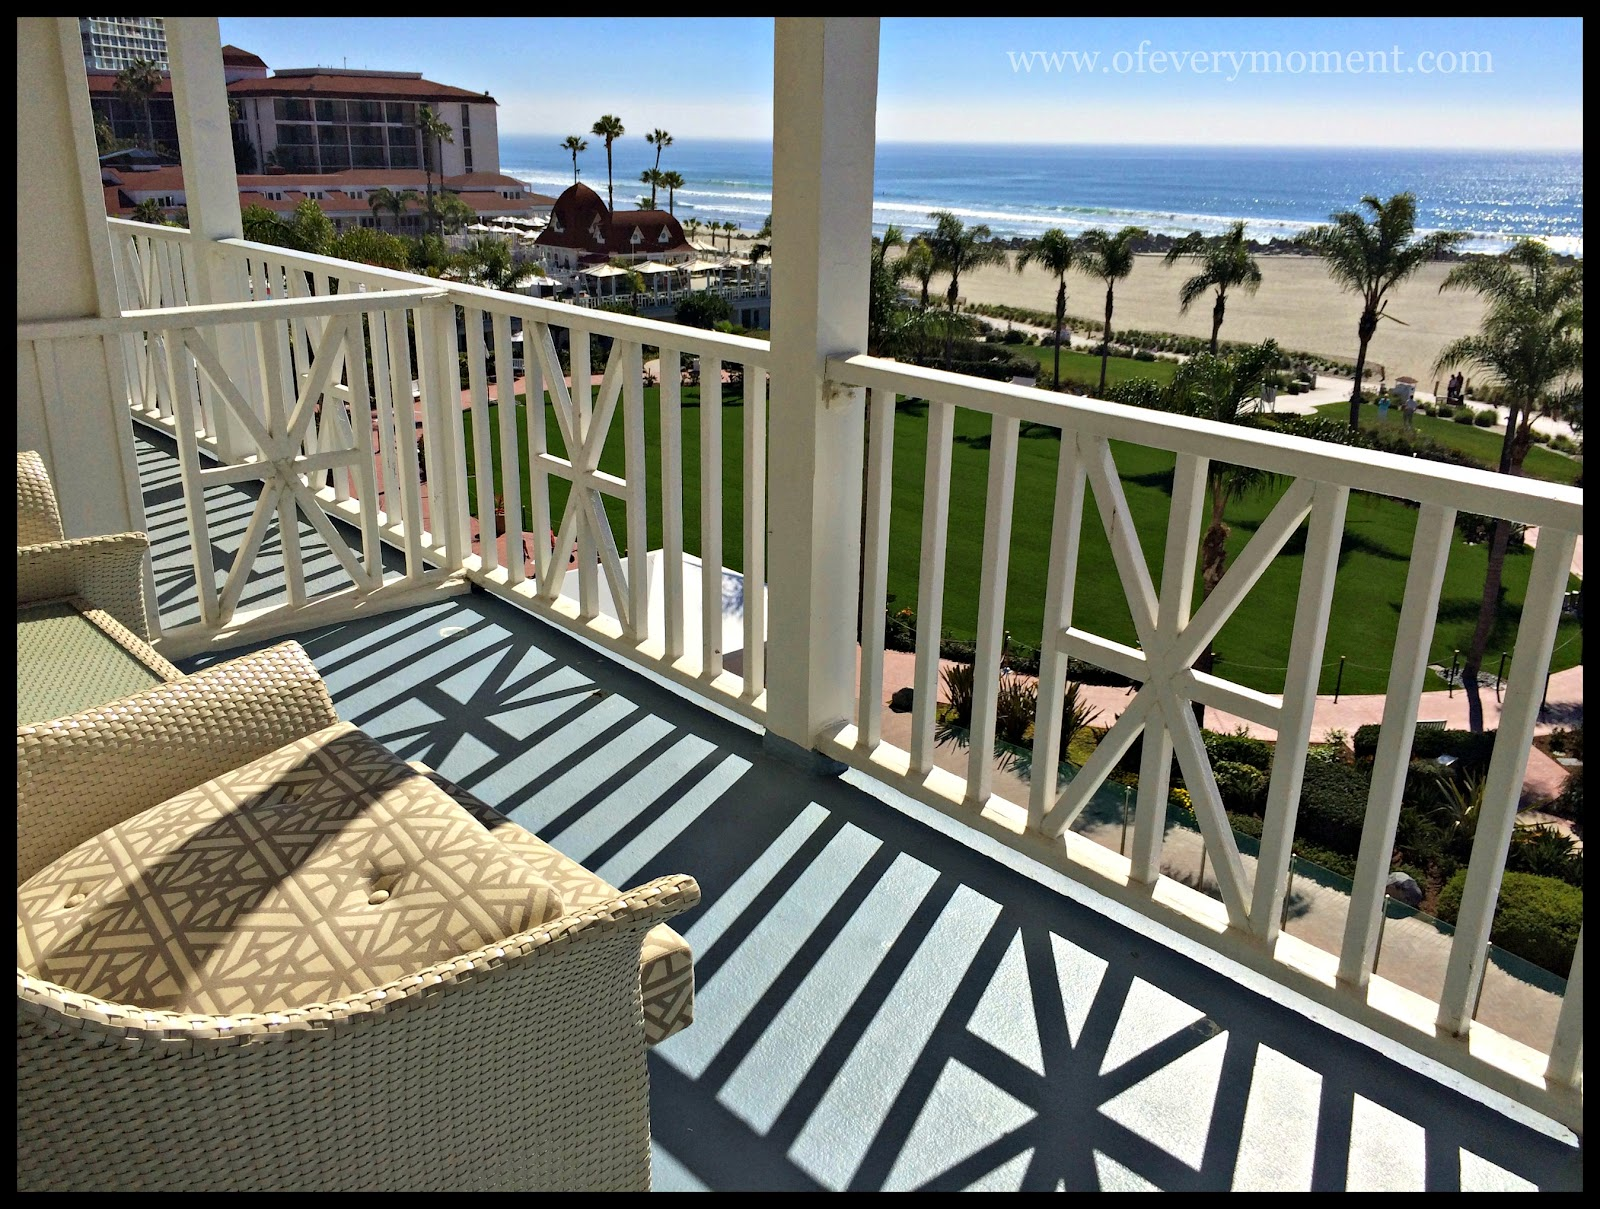 ocean view, Hotel del Coronado, vacation, resort, California